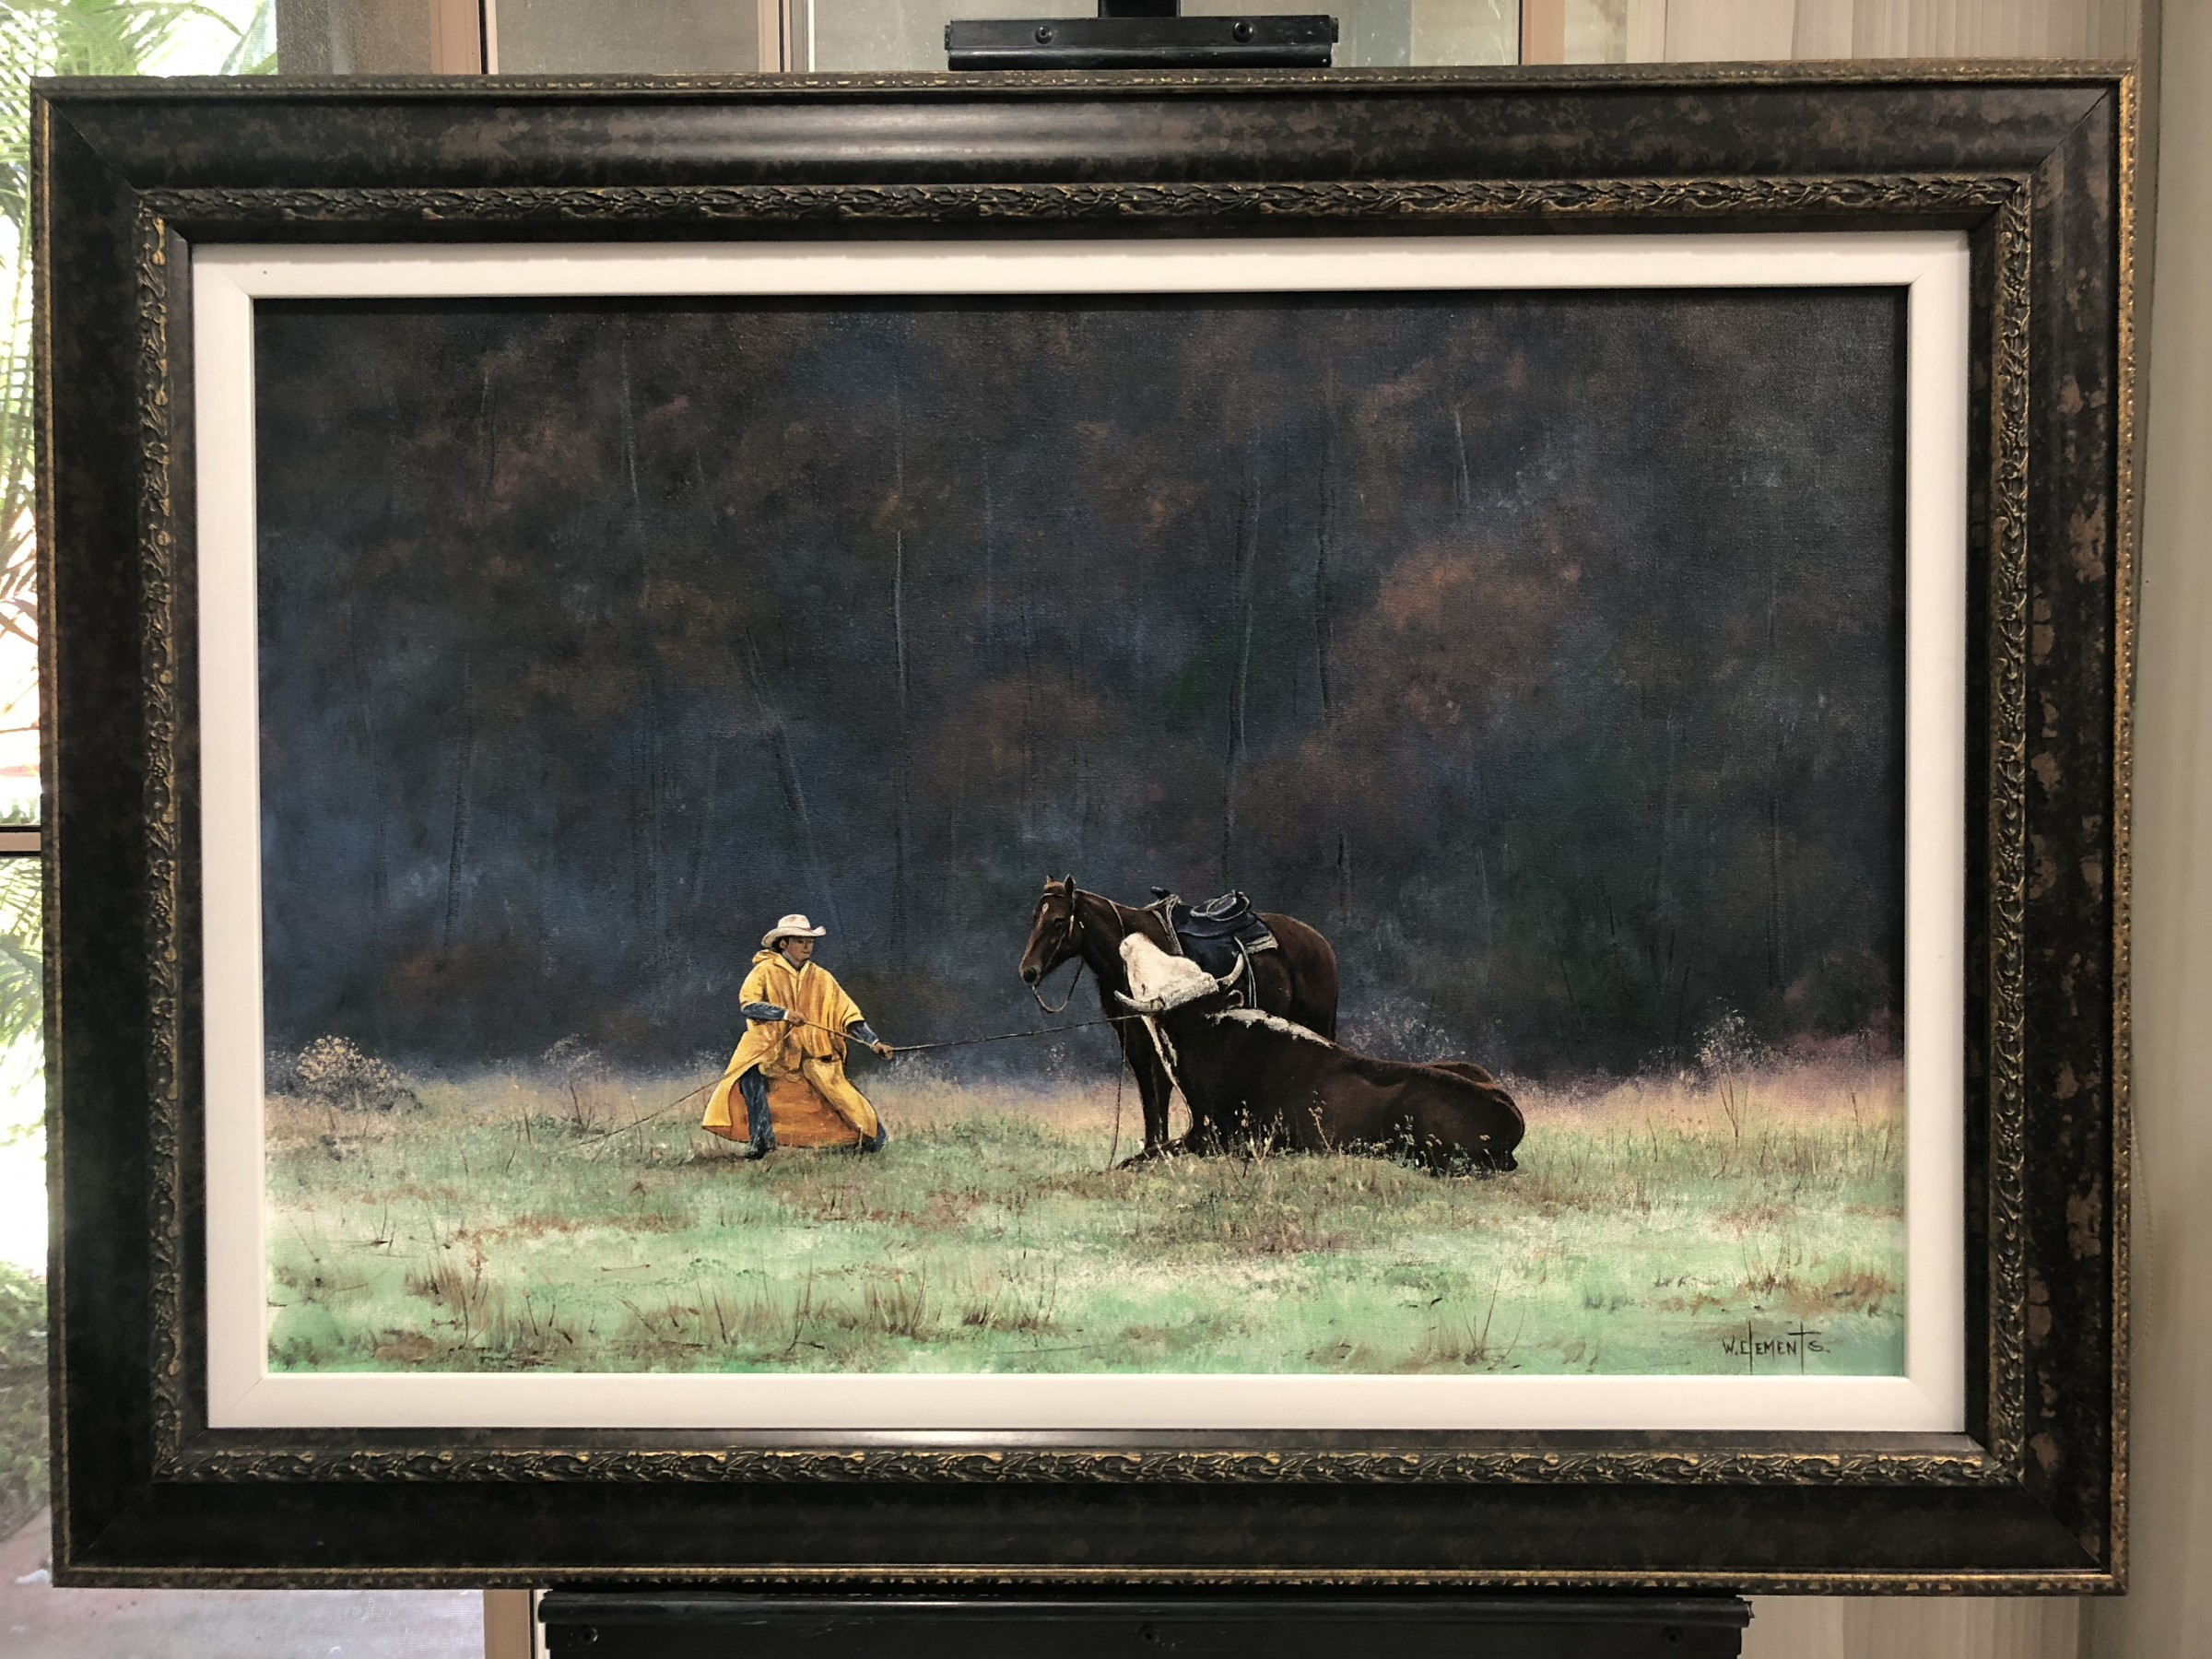 Commissioned Oil Painting of Cowboy with Horse and Bull